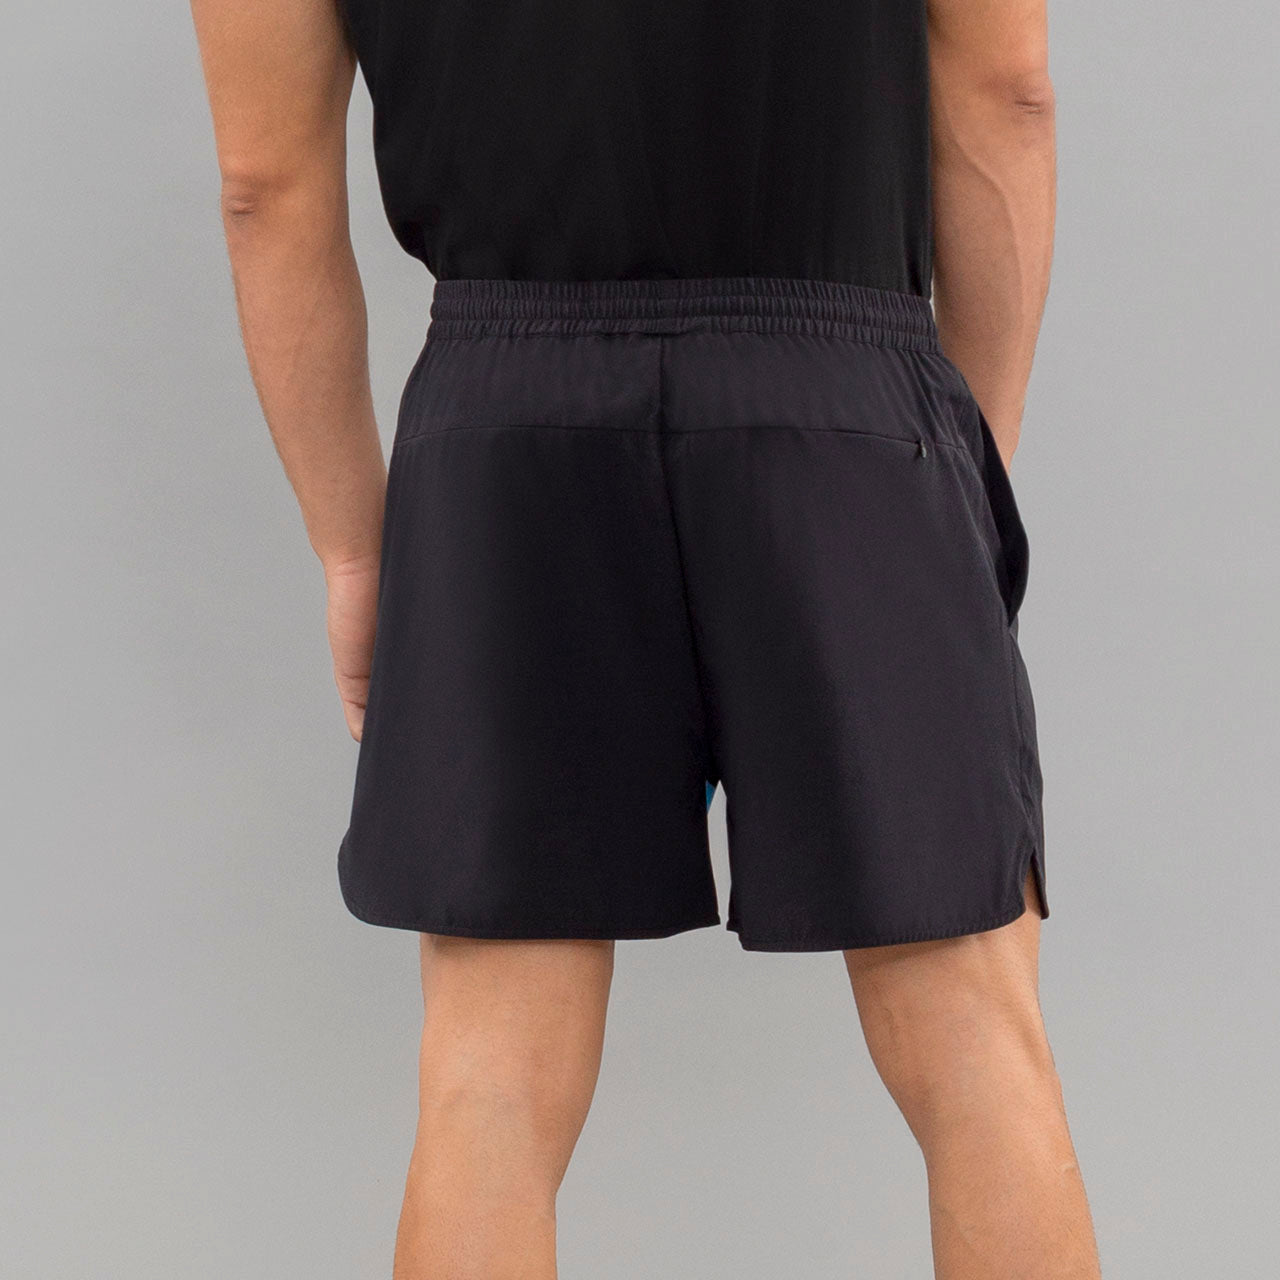 Sydney Kings Mens Baseline Shorts